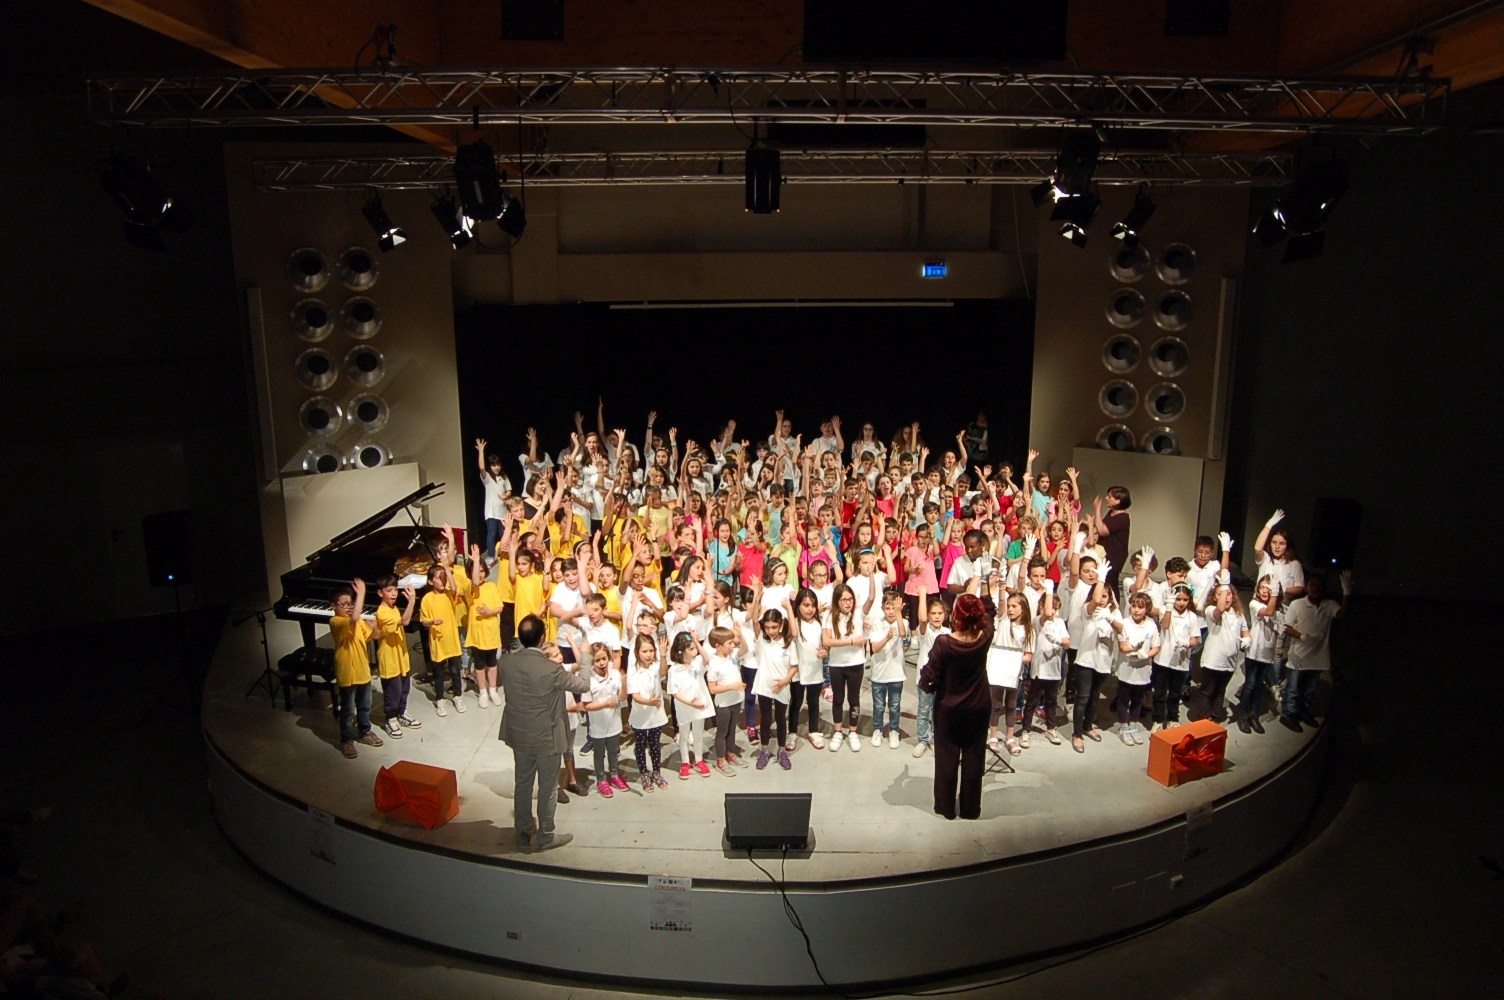 An open site on children's and children's choral formation: Corinfesta.